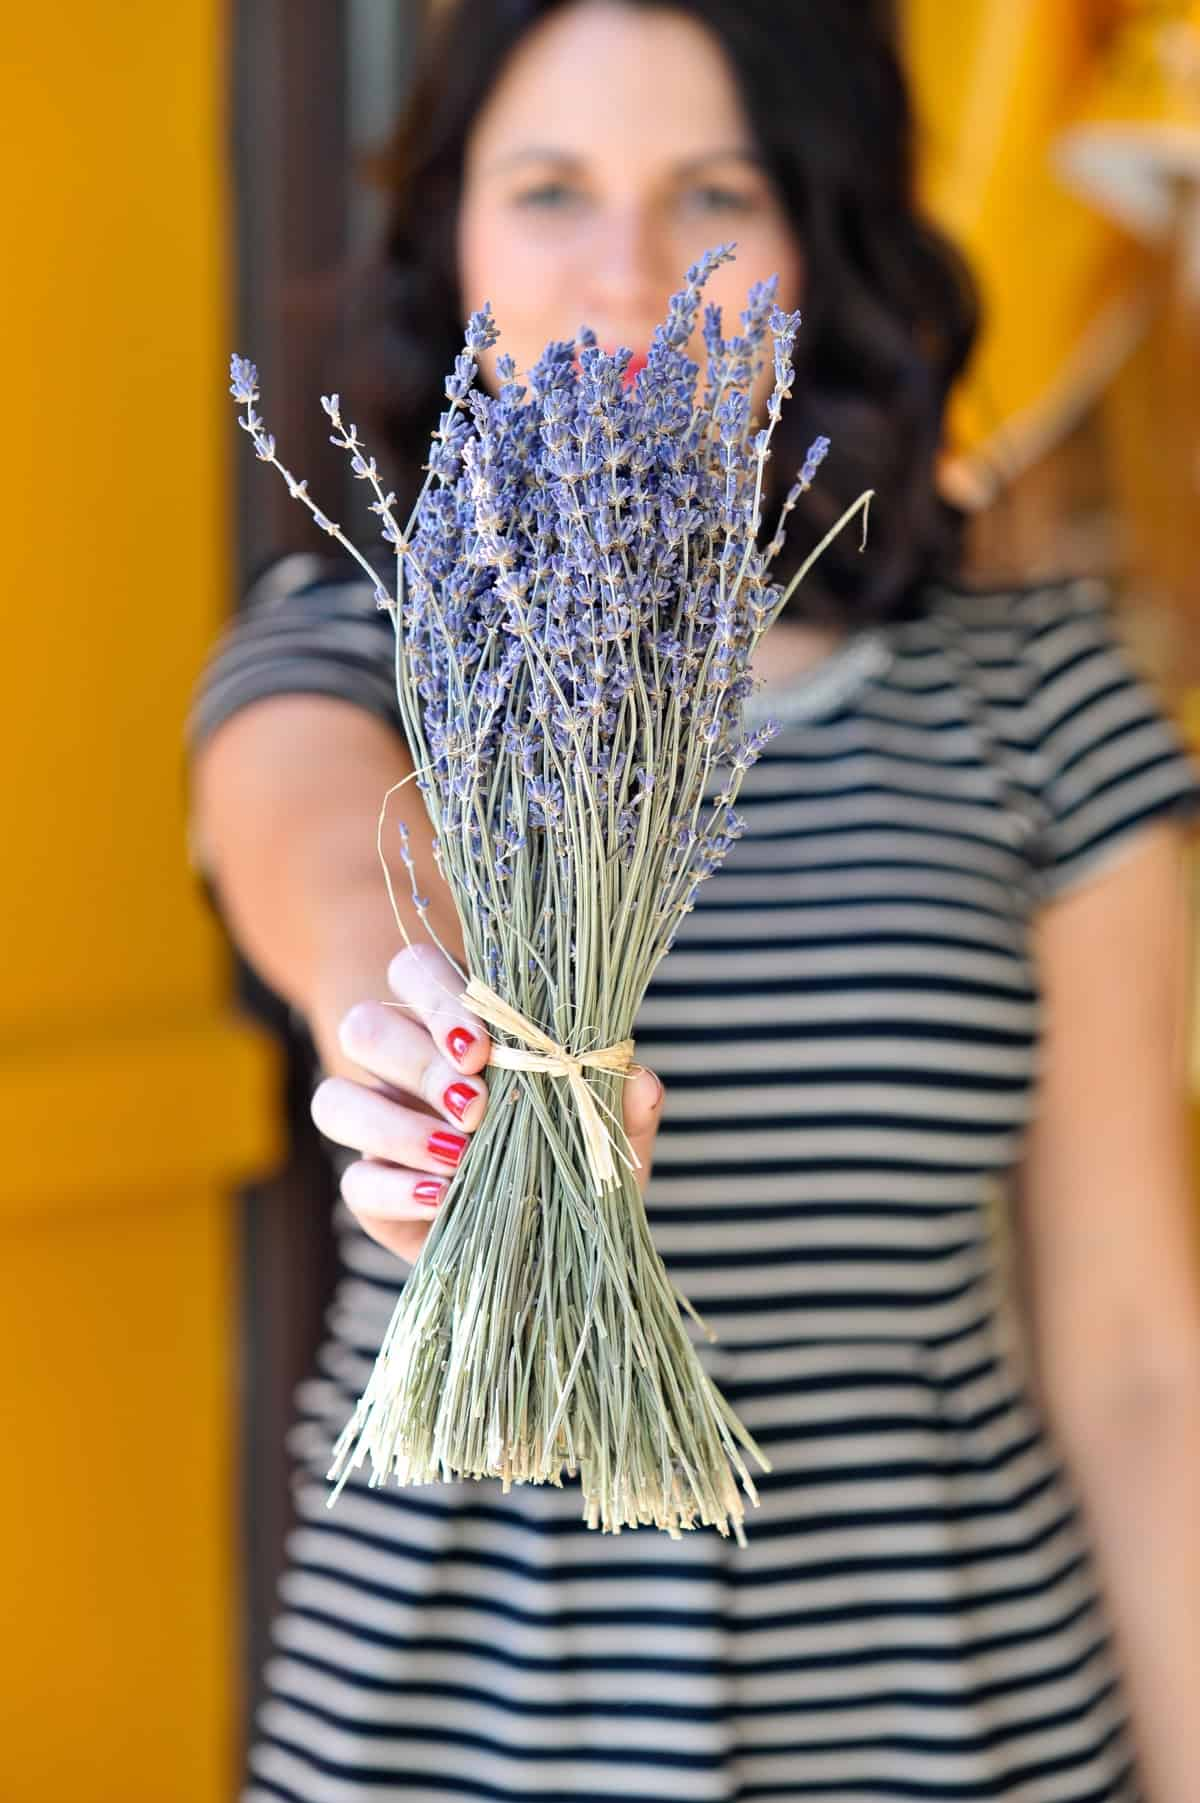 Lavender, striped dress and lavender flowers - My Style Vita @mystylevita